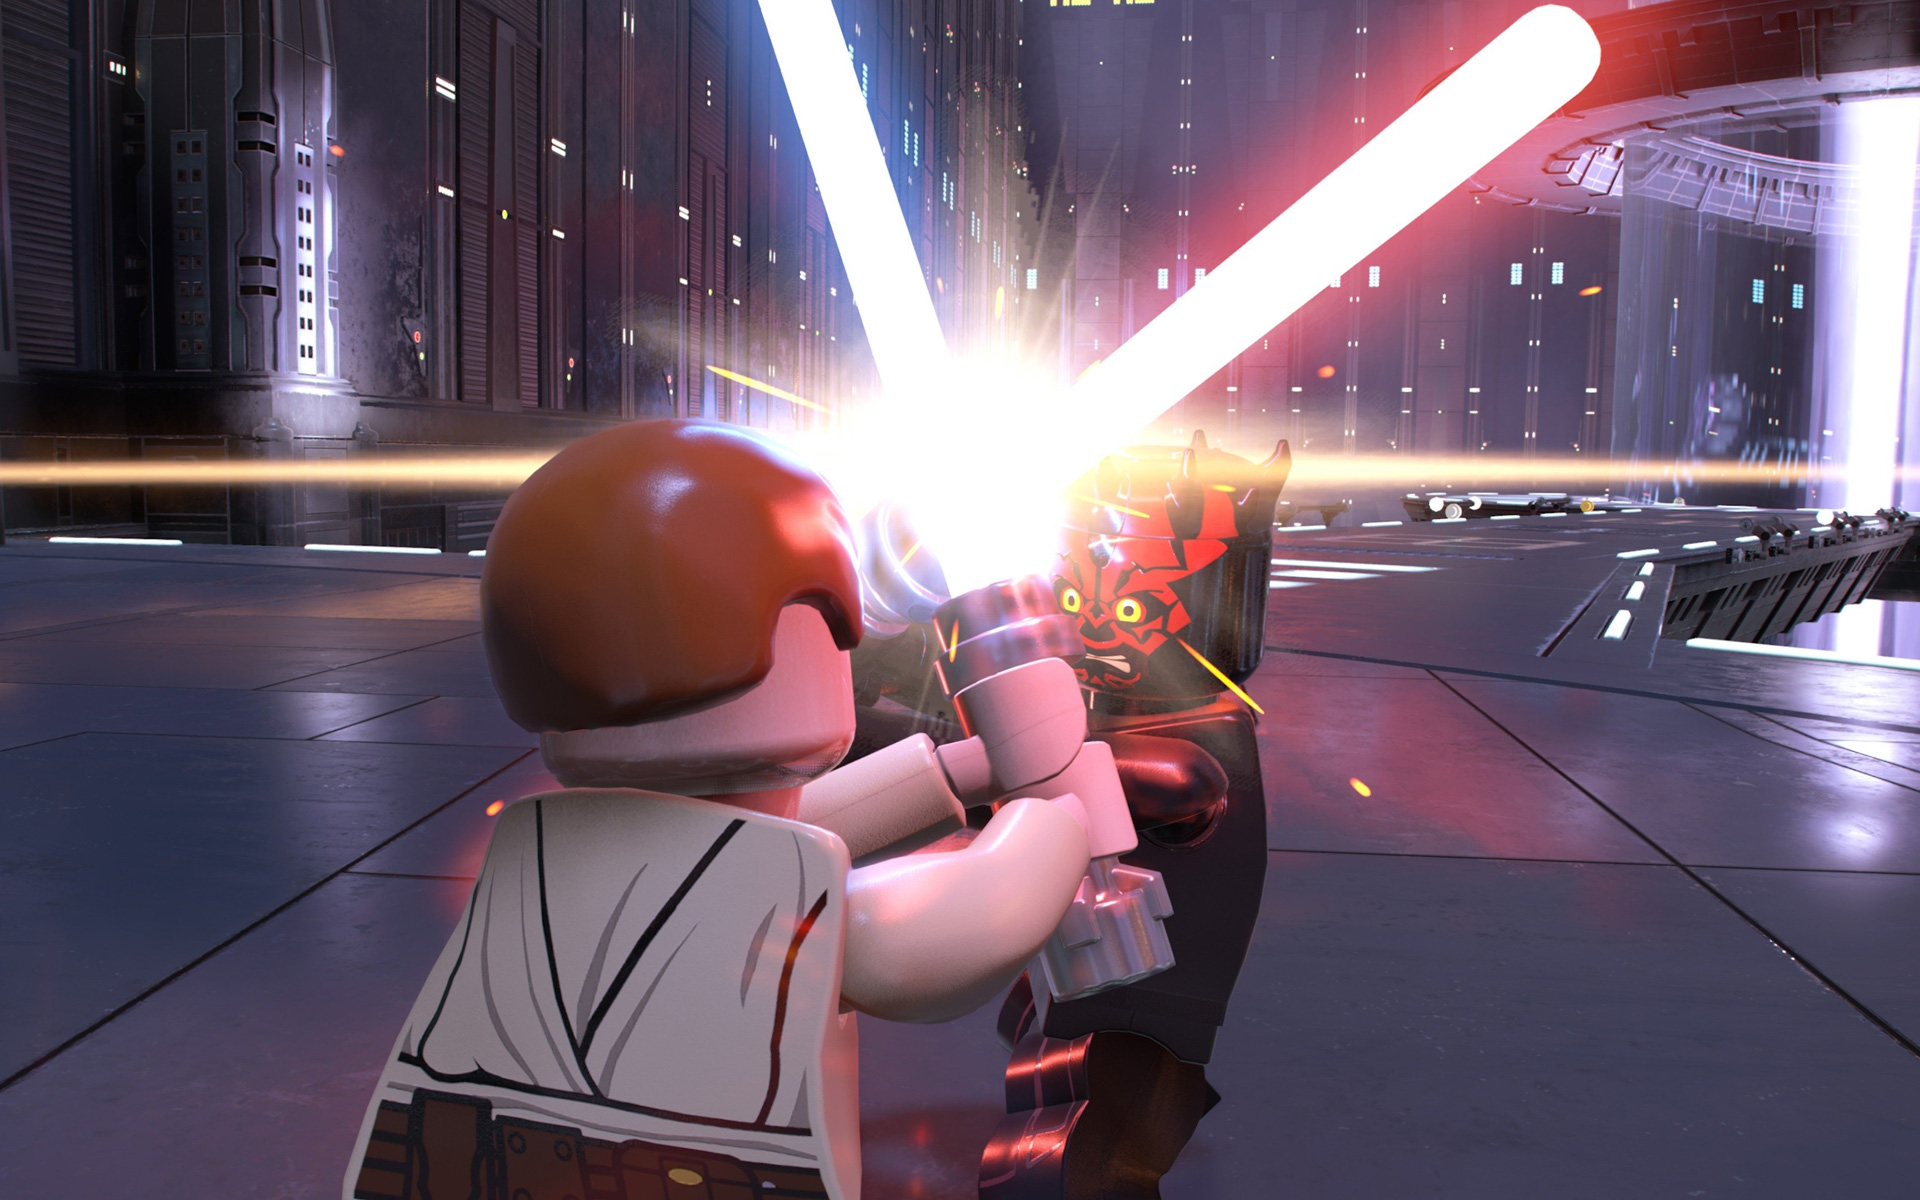 Free Lego Star Wars: The Skywalker Saga Wallpaper in 1920x1200